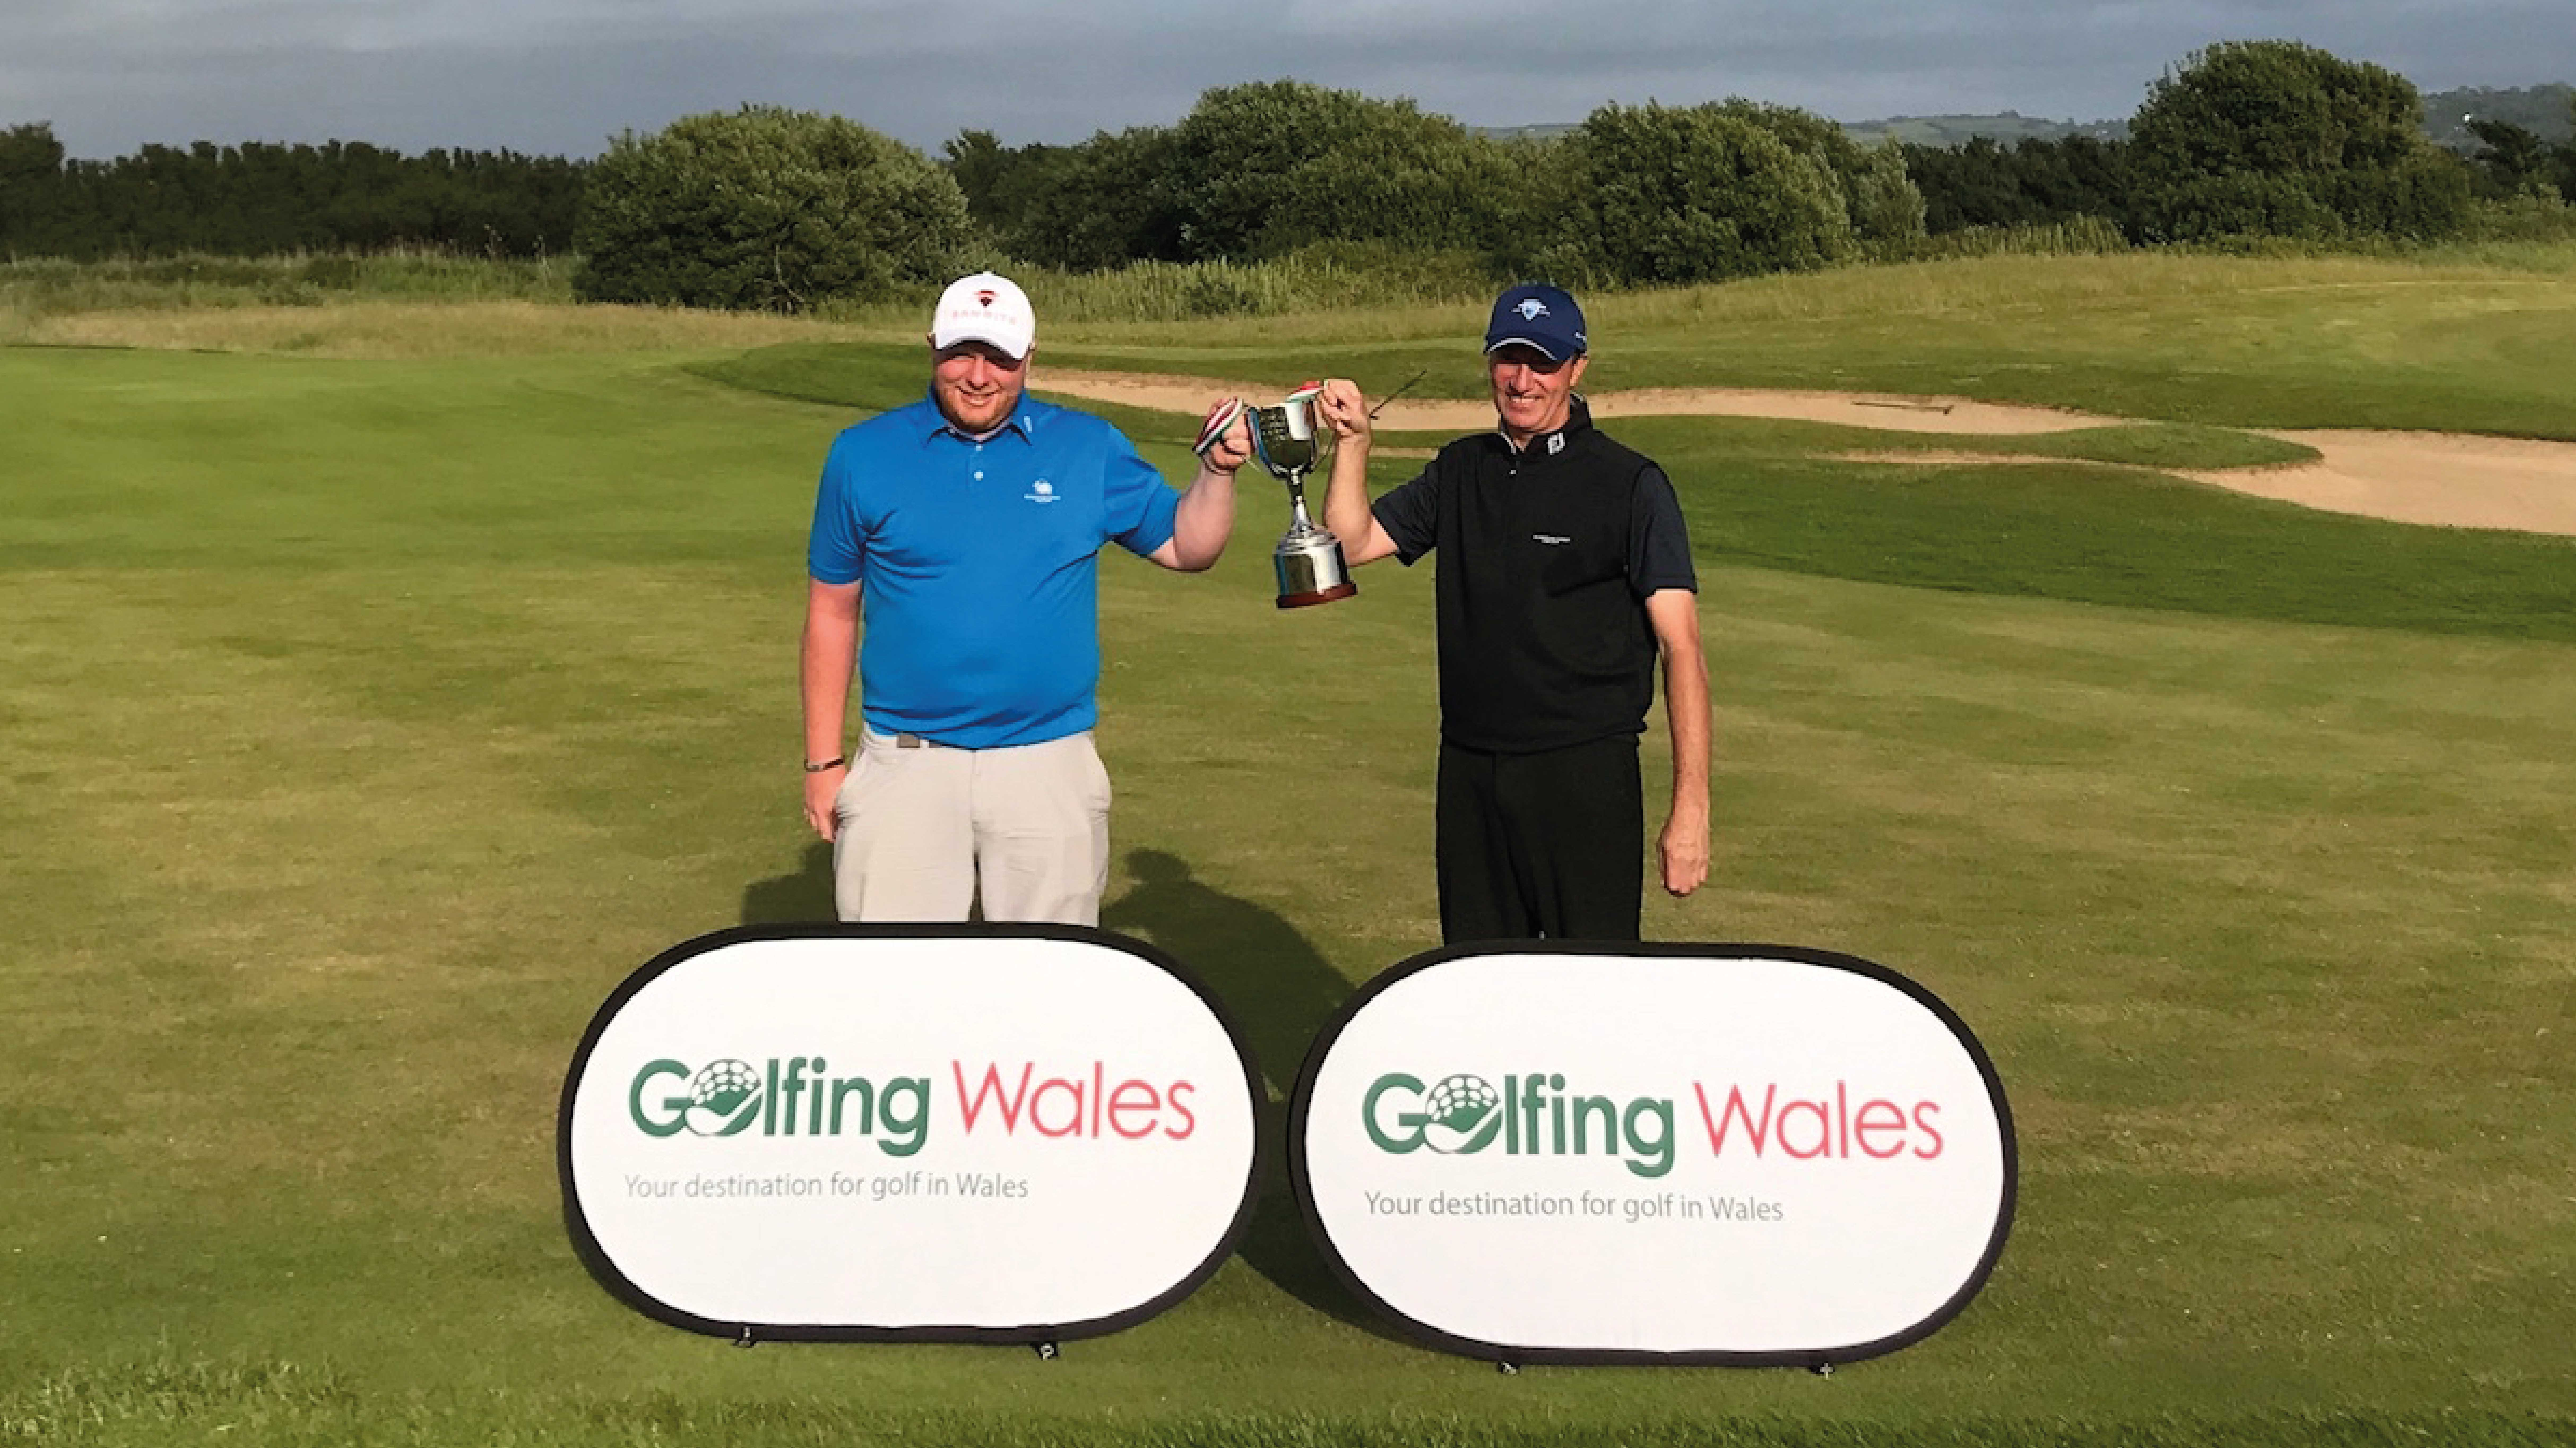 The First Golfing Wales Challenge Cup proved to be a Great Challenge!